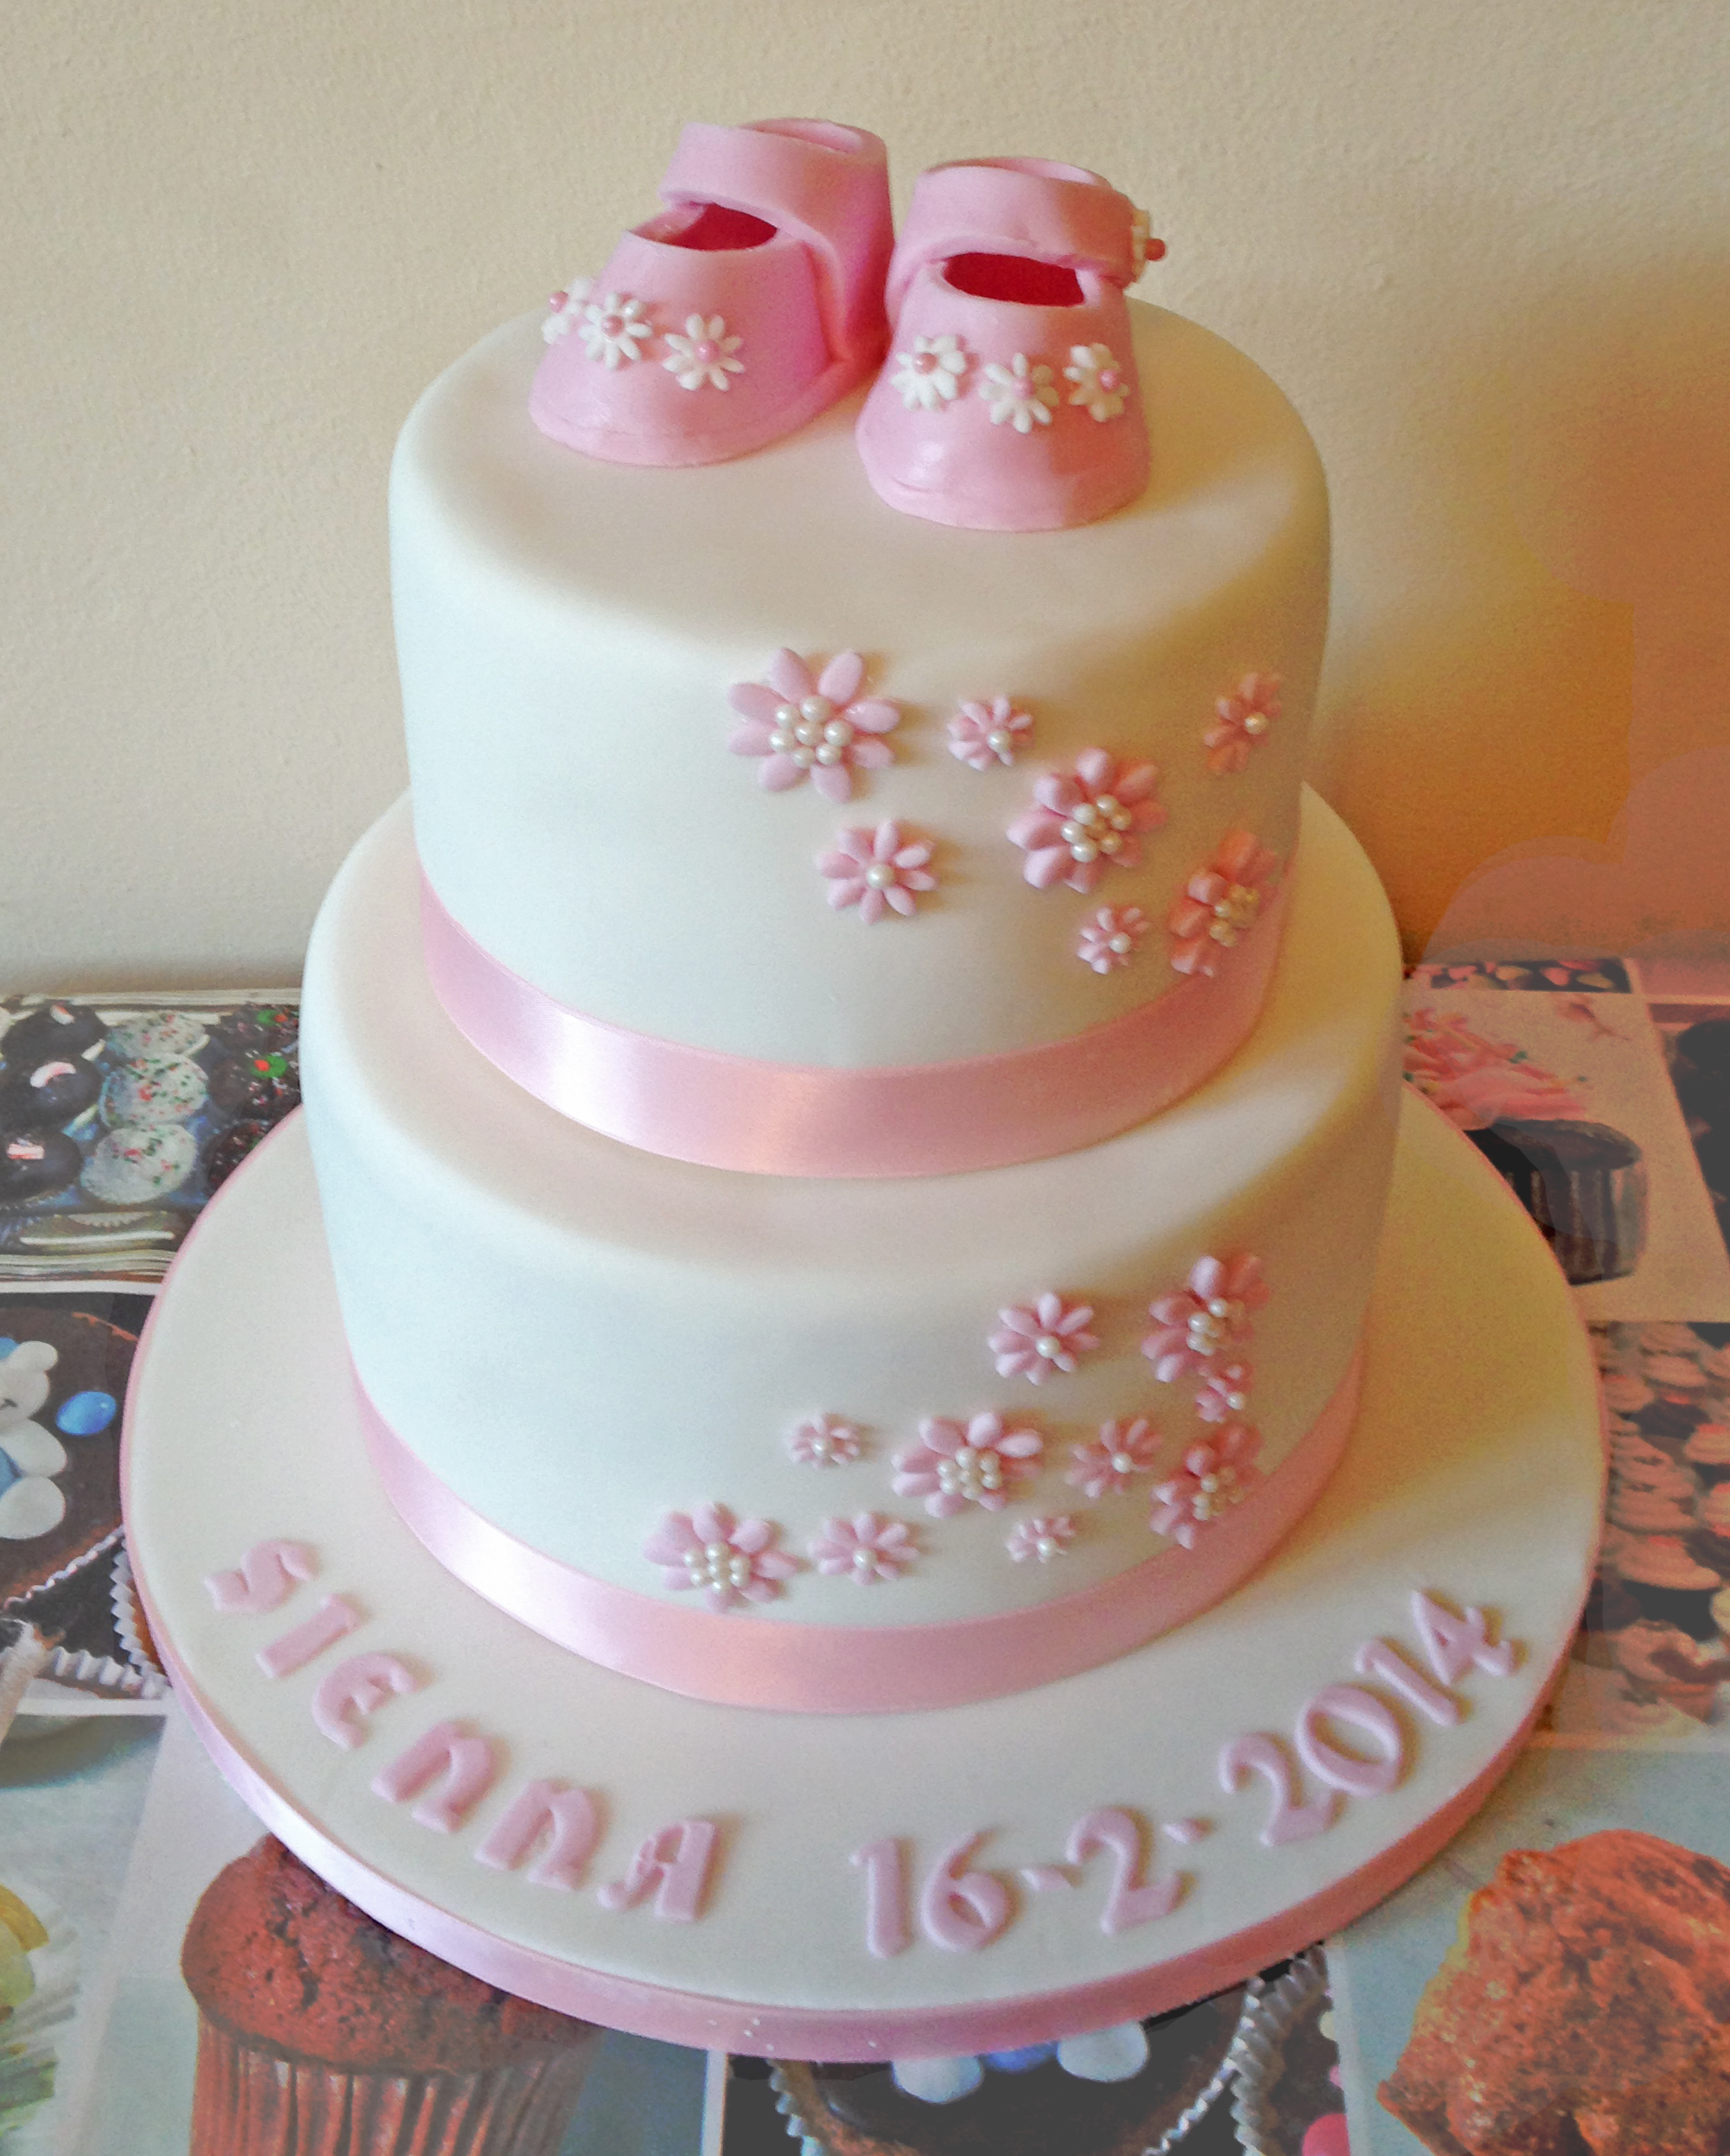 New Baby Cake Images : Special Occasion Cakes - www.midnightbaker.co.uk